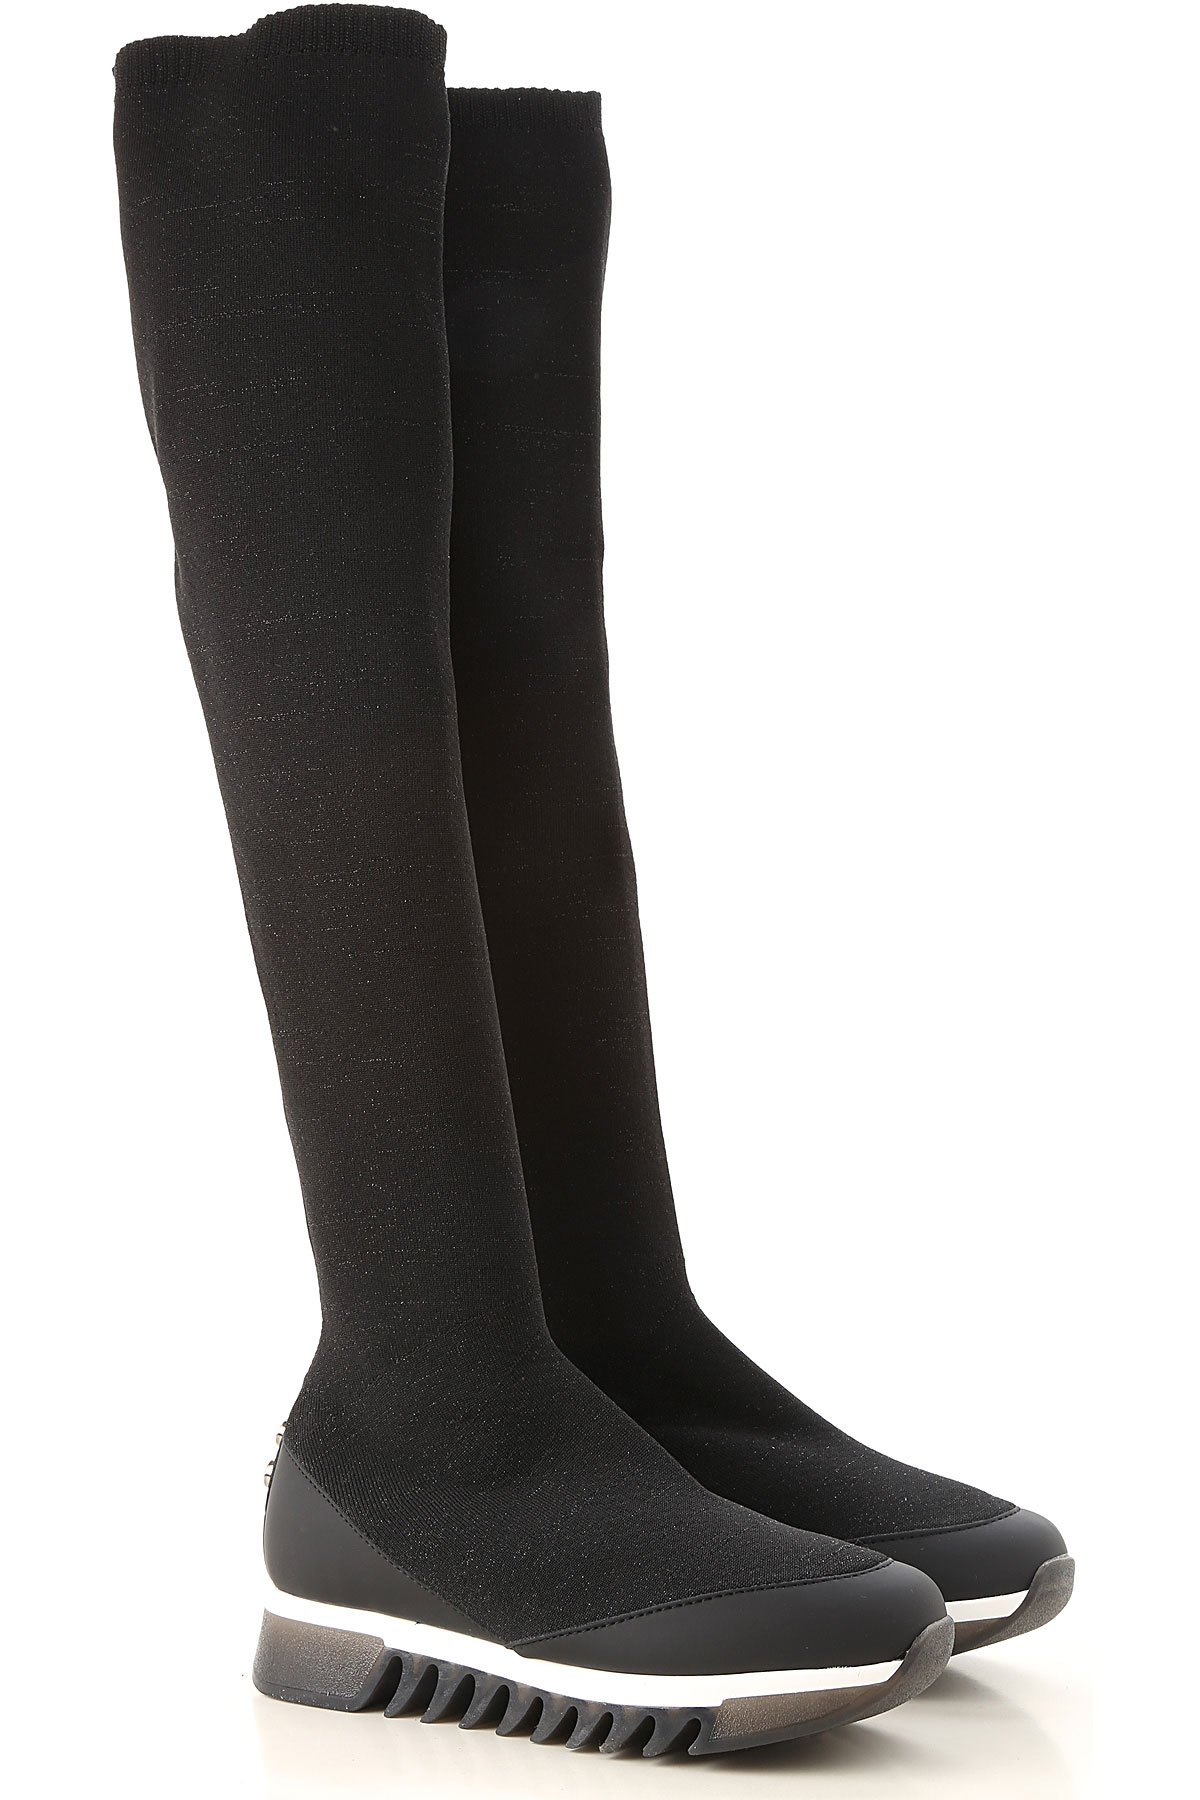 Image of Alexander Smith Boots for Women, Booties, Black, Fabric, 2017, 6 7 8 9